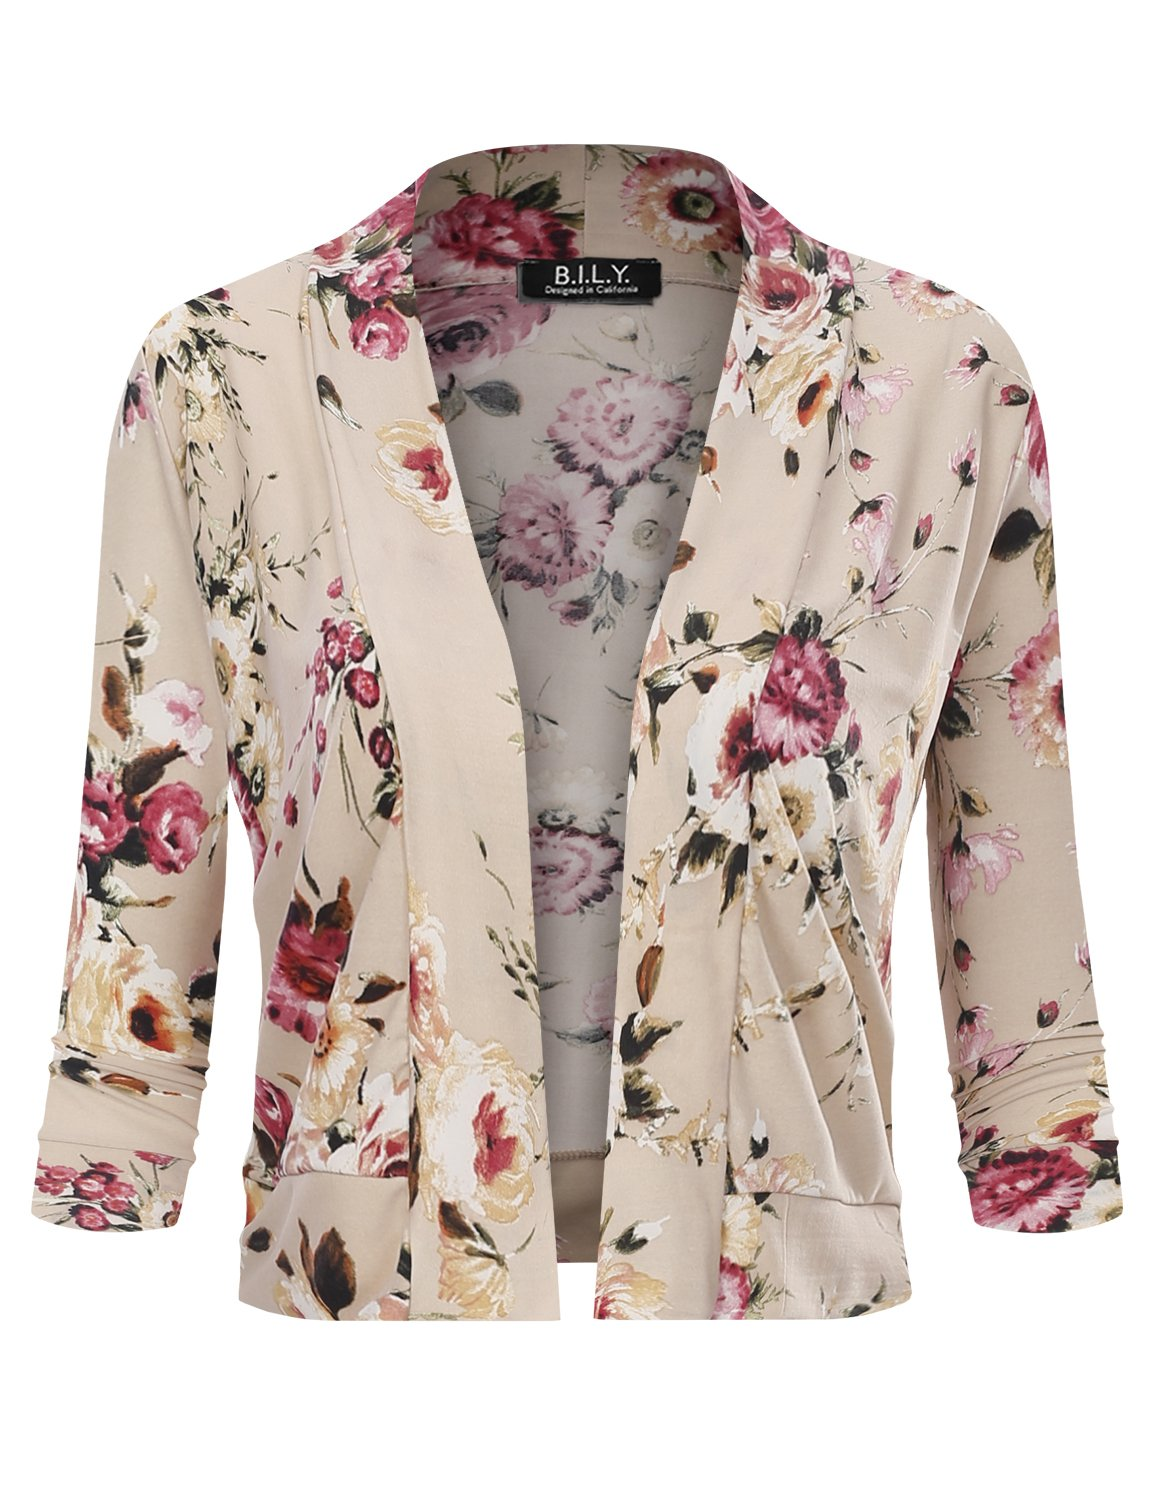 BILY Women's Classic Open Front Cropped 3/4 Sleeve Floral Print Cardigan 11992 Stone Medium by B.I.L.Y (Image #2)